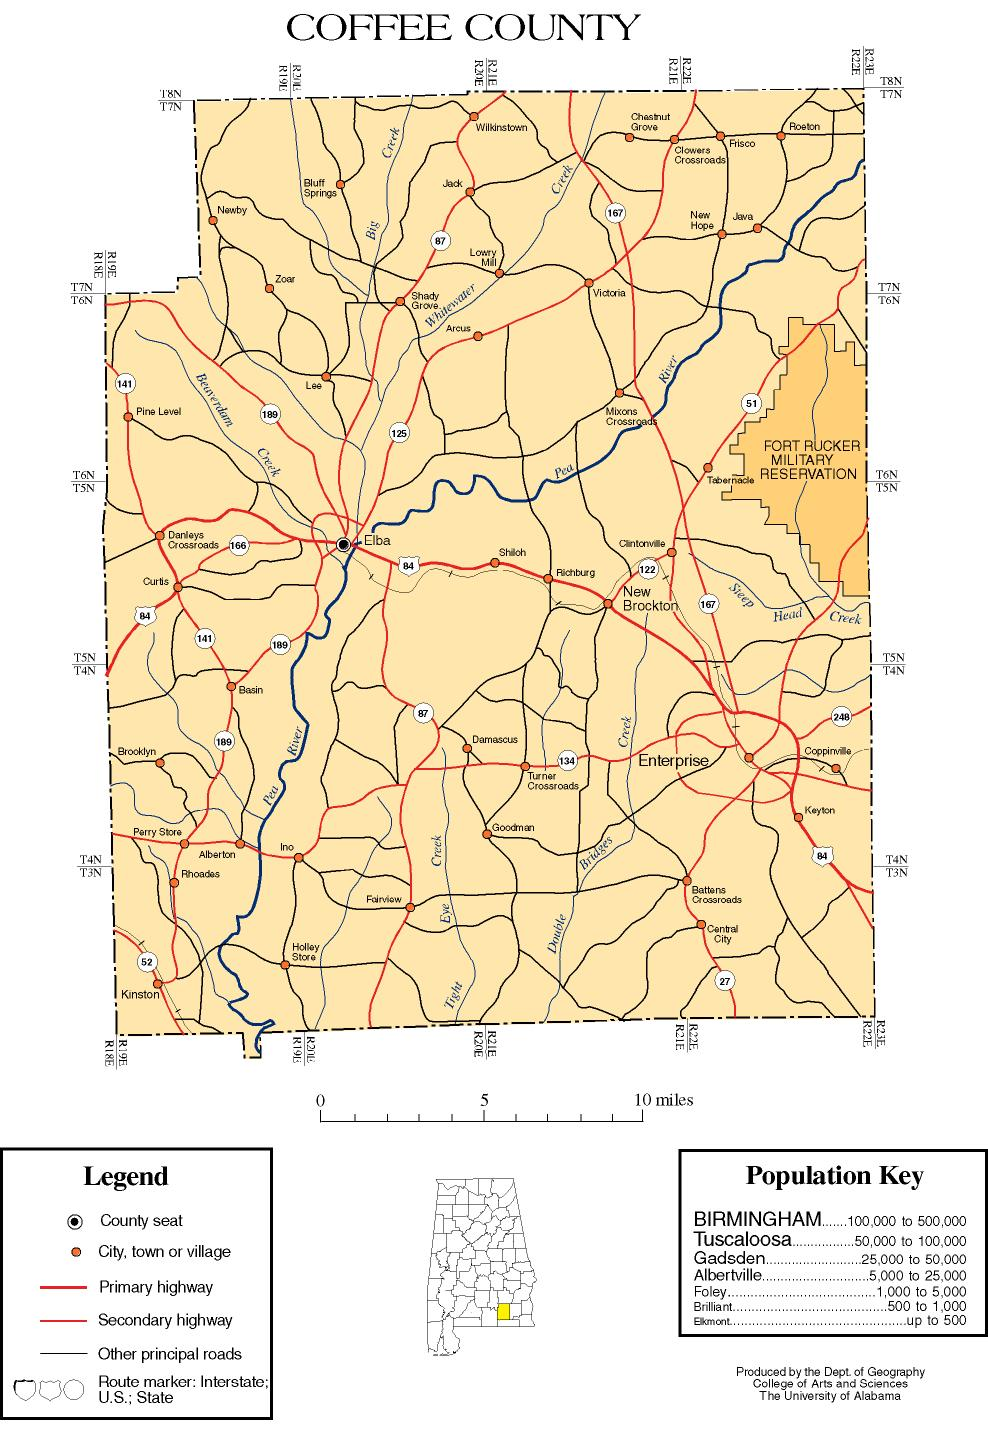 coffee county alabama history adah - map of alabama counties with coffee county highlighted